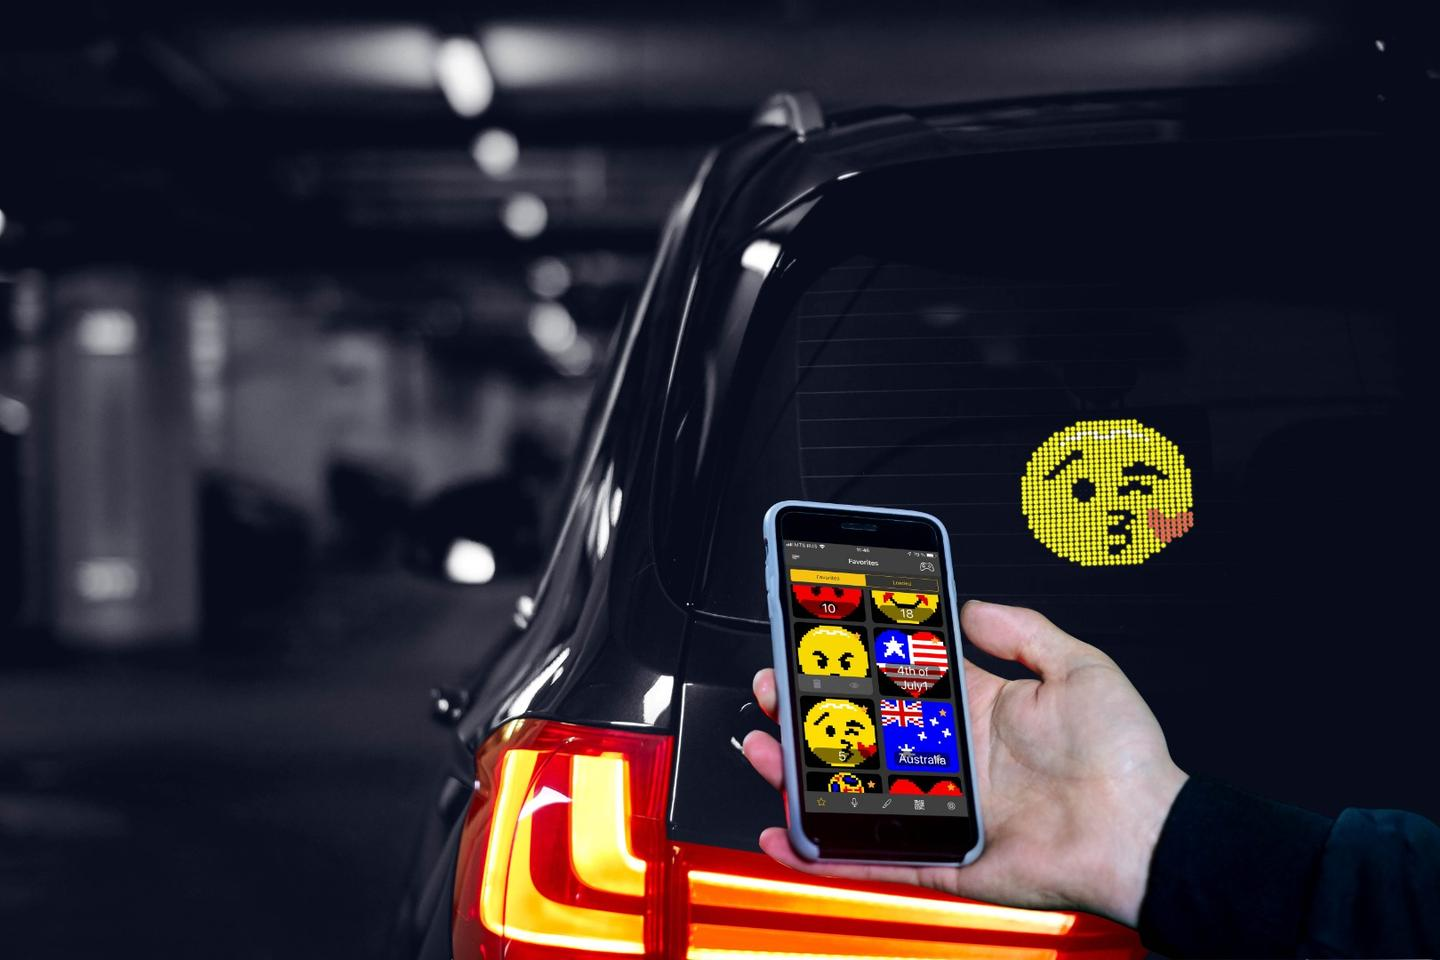 With 1,500 animated images to choose from, running out of ways toexpressyourself to your fellow motorists is unlikely